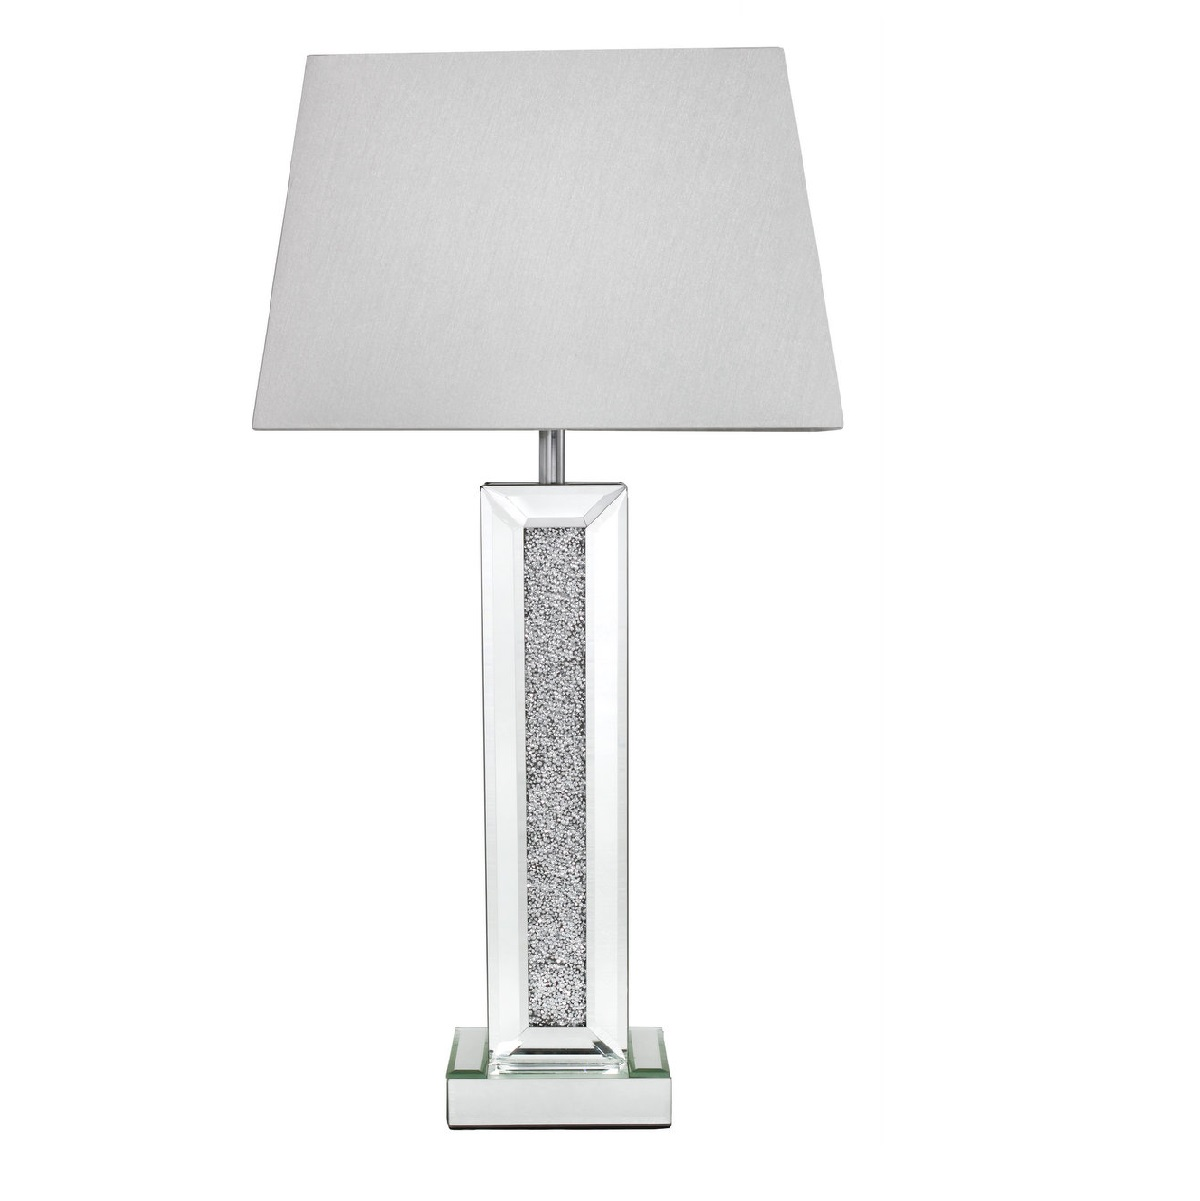 Tuscany Pillar Lamp With Swarovski Crystals2